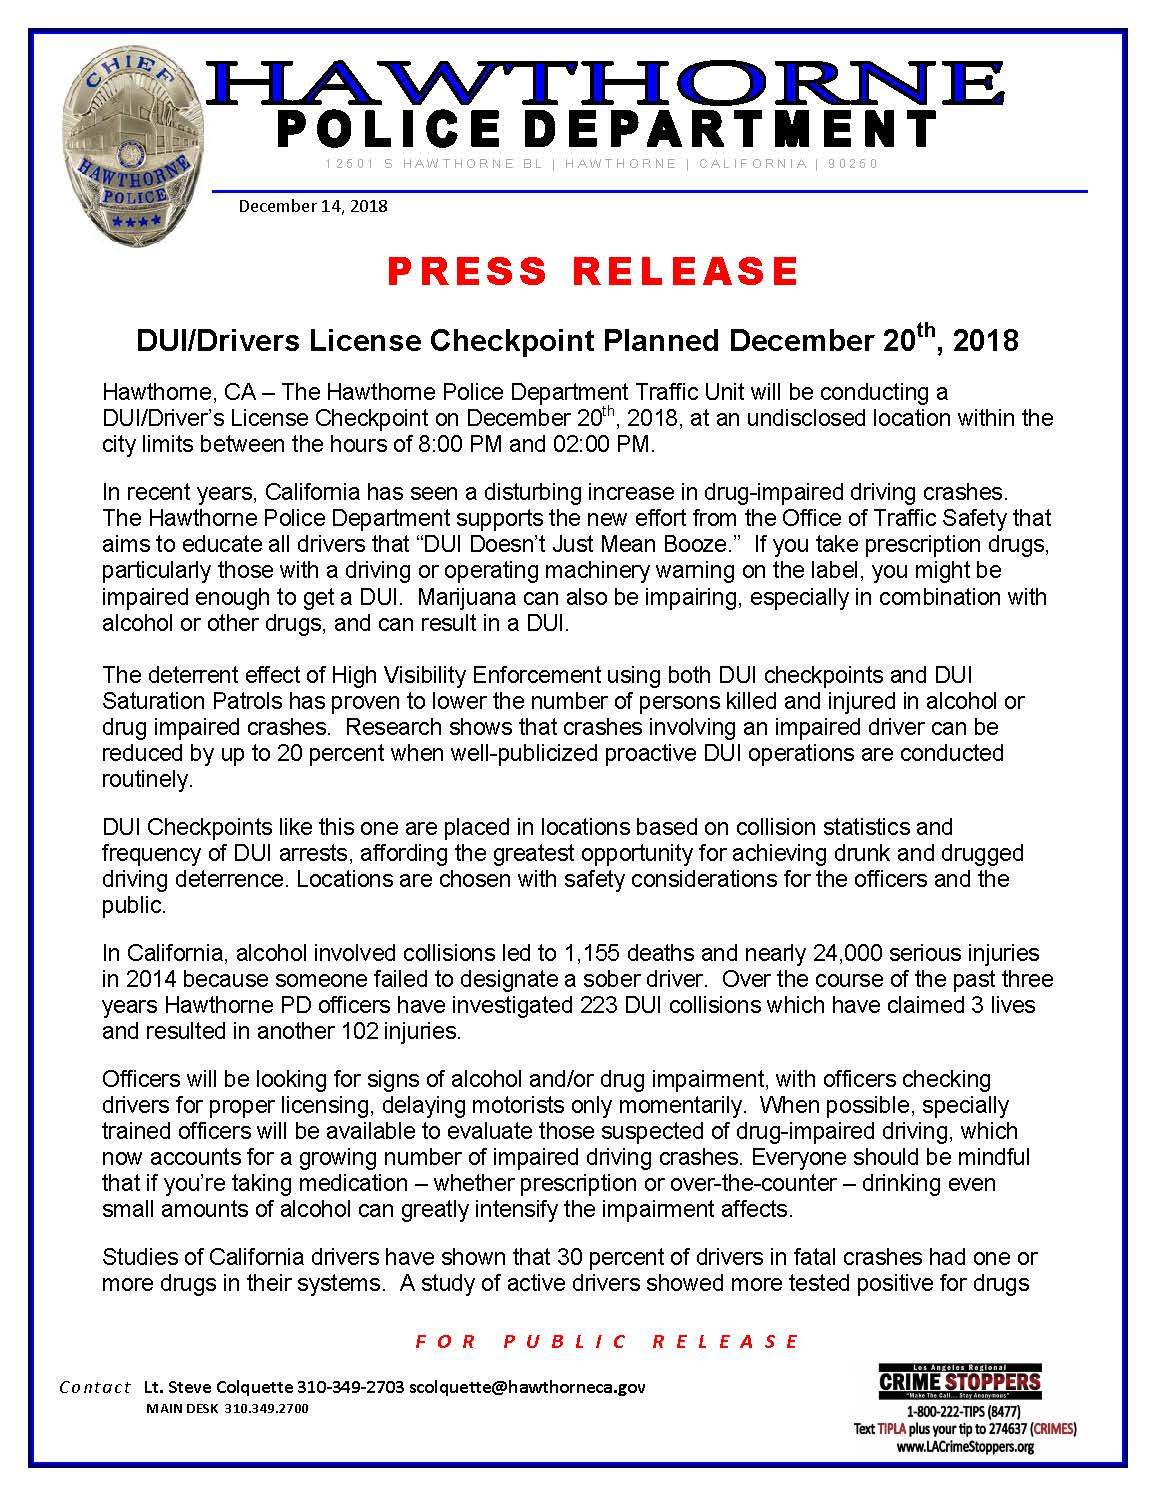 DUI/Drivers License Checkpoint Planned December 20, 2018 - pg1